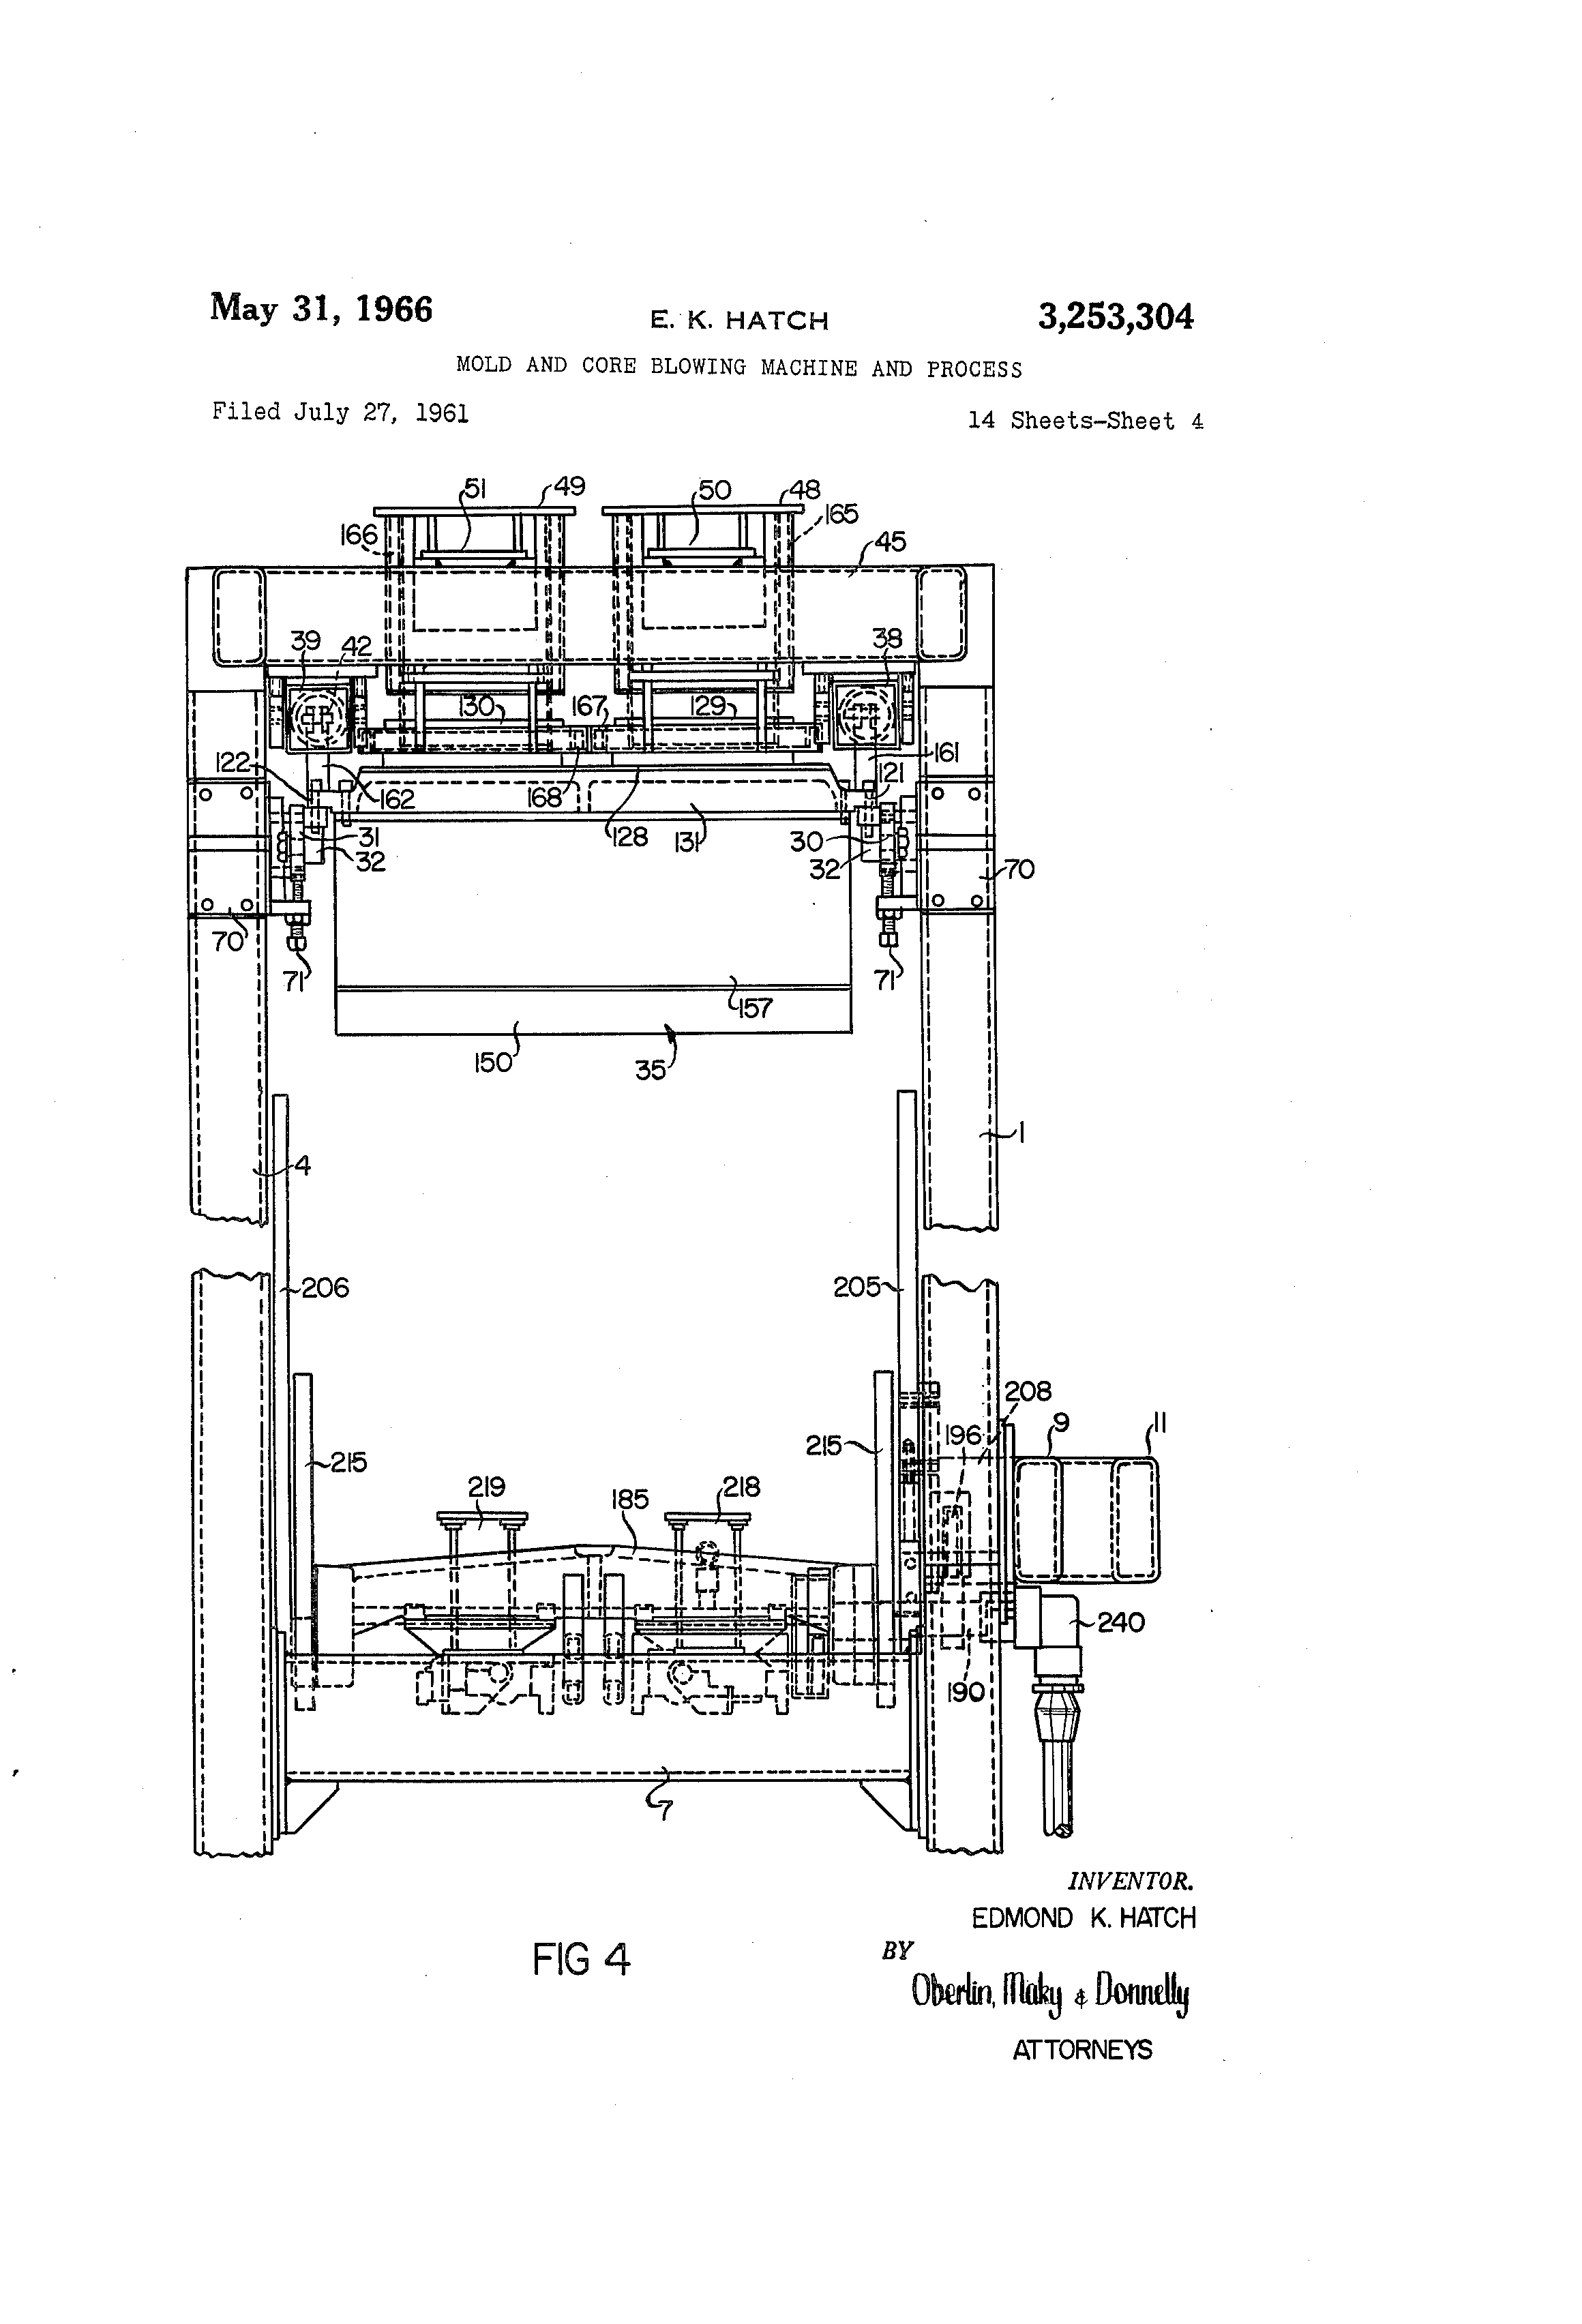 US3253304 3 patent us3253304 mold and core blowing machine and process  at sewacar.co